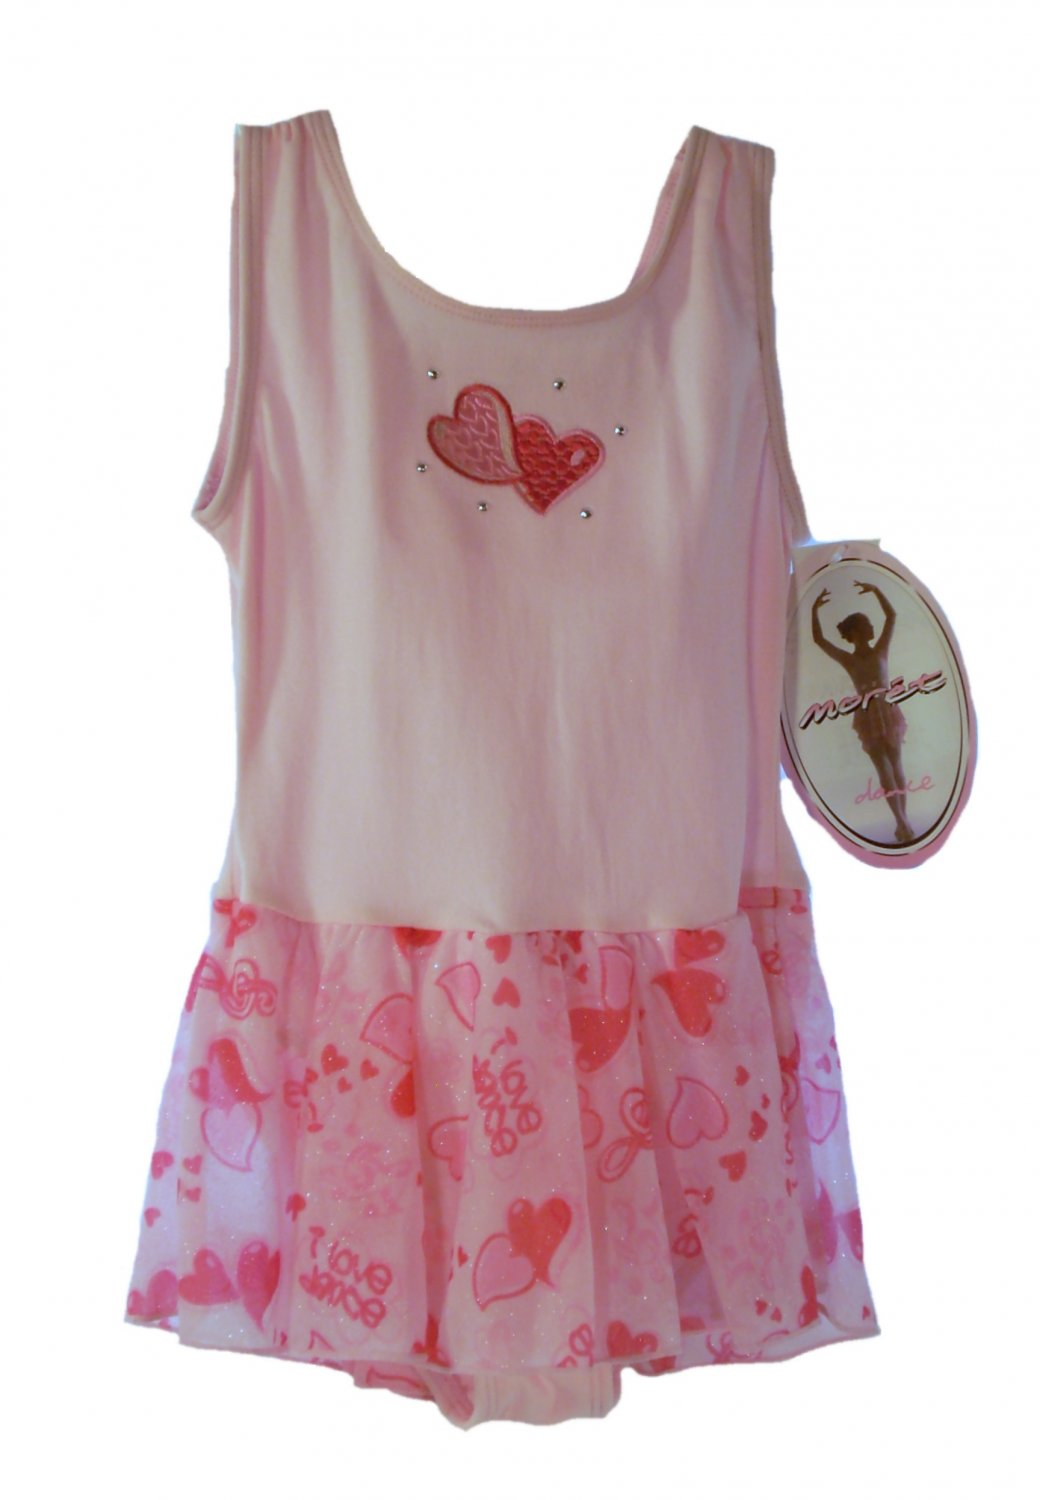 Jacques Moret Dance Girl's Pink Heart Tank Skirted Leotard X-Small